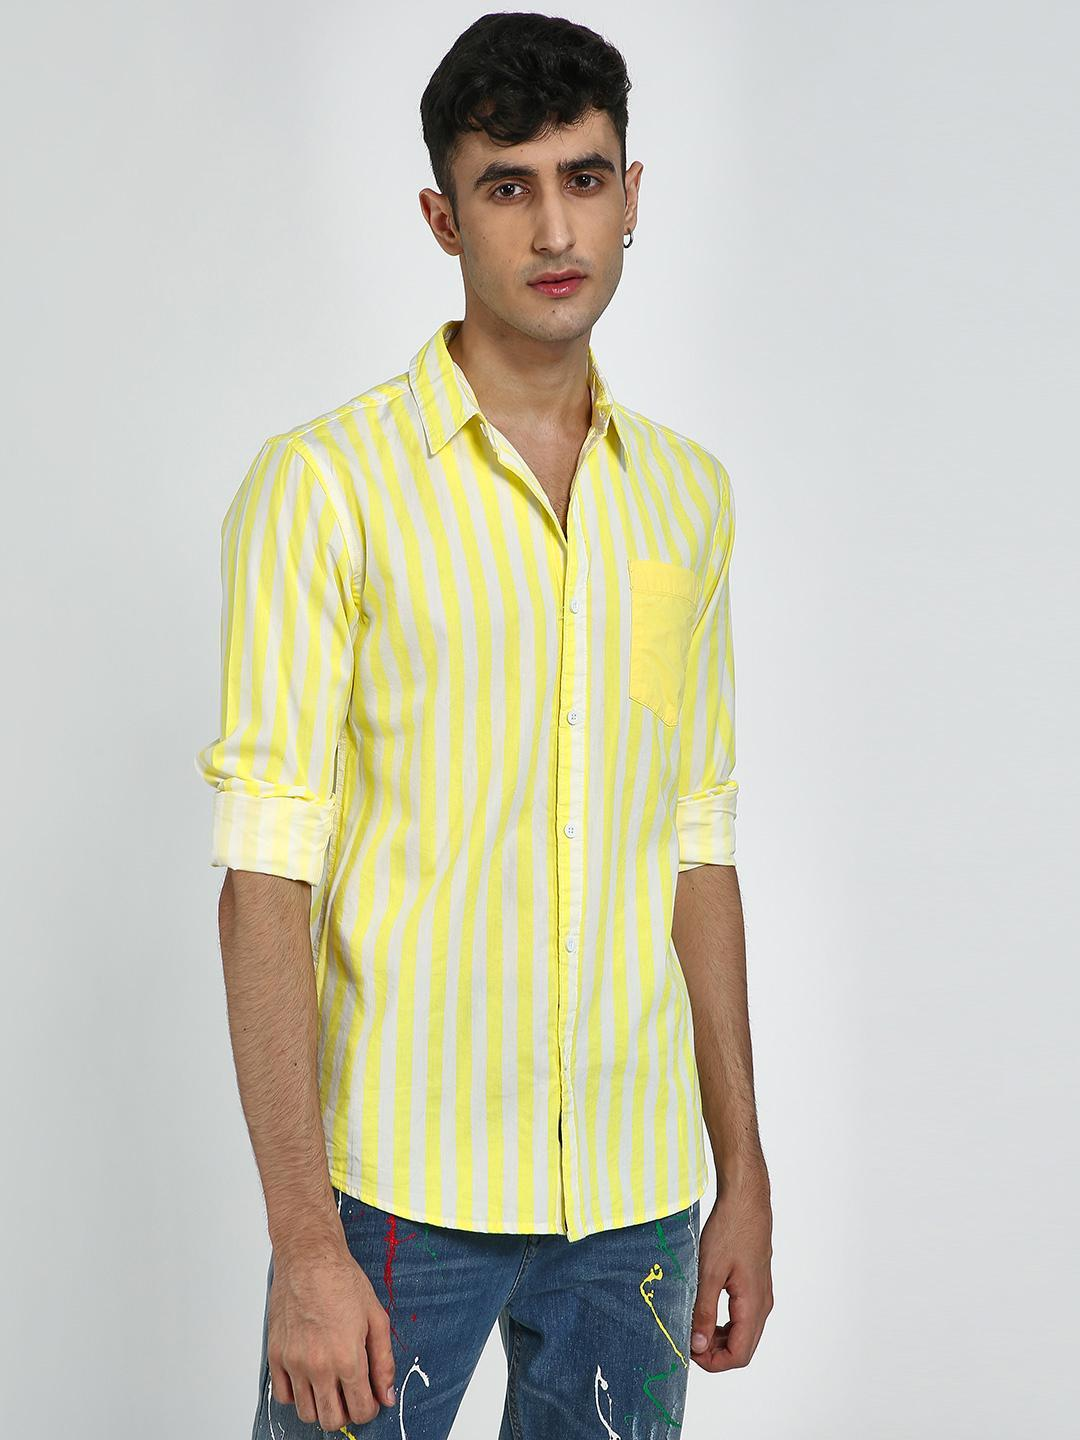 Blue Saint Yellow All Over Vertical Print Patch Pocket Shirt 1